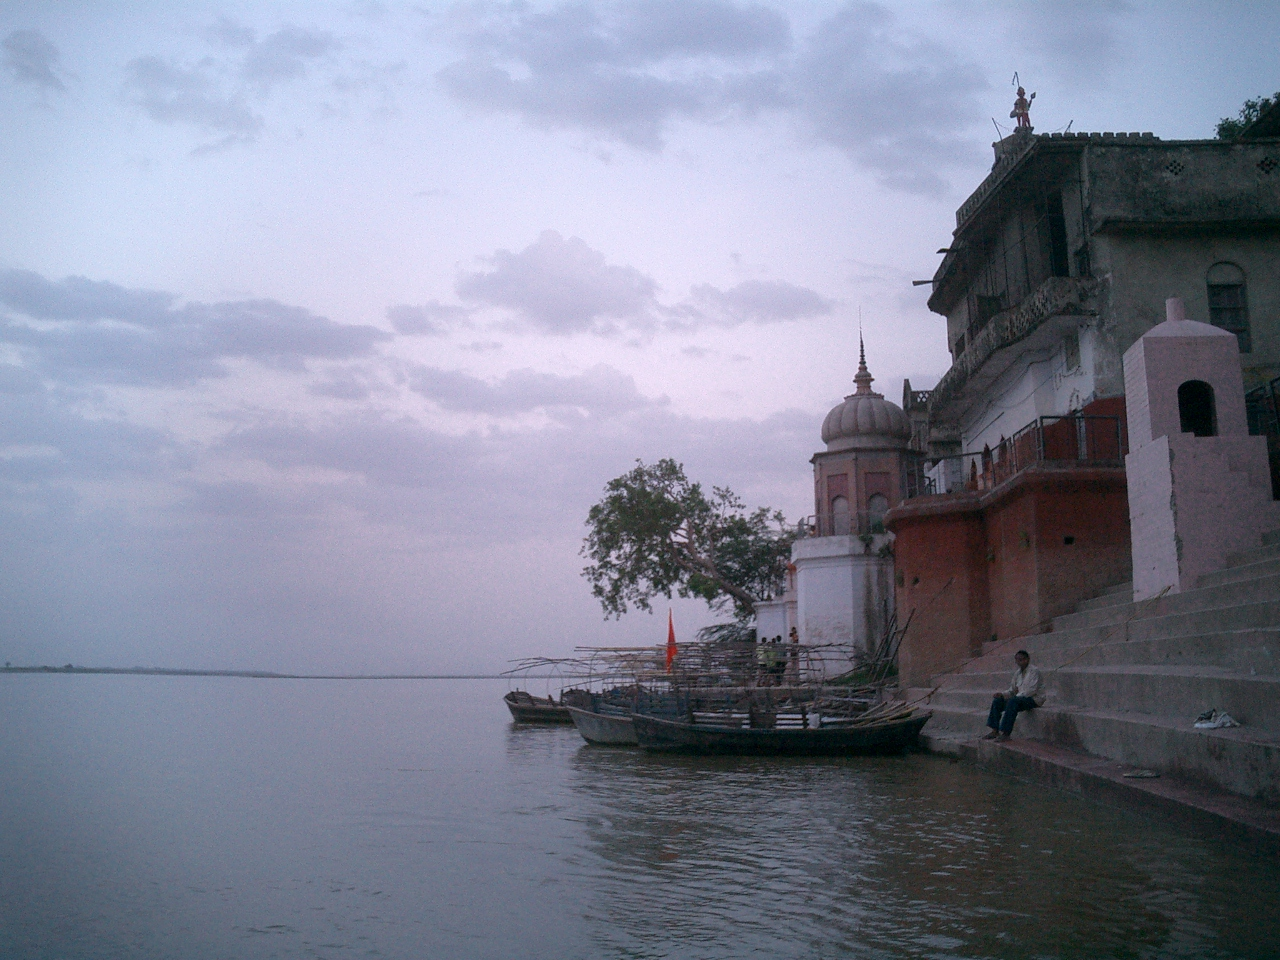 Kanpur will soon get a riverfront along the river Ganga